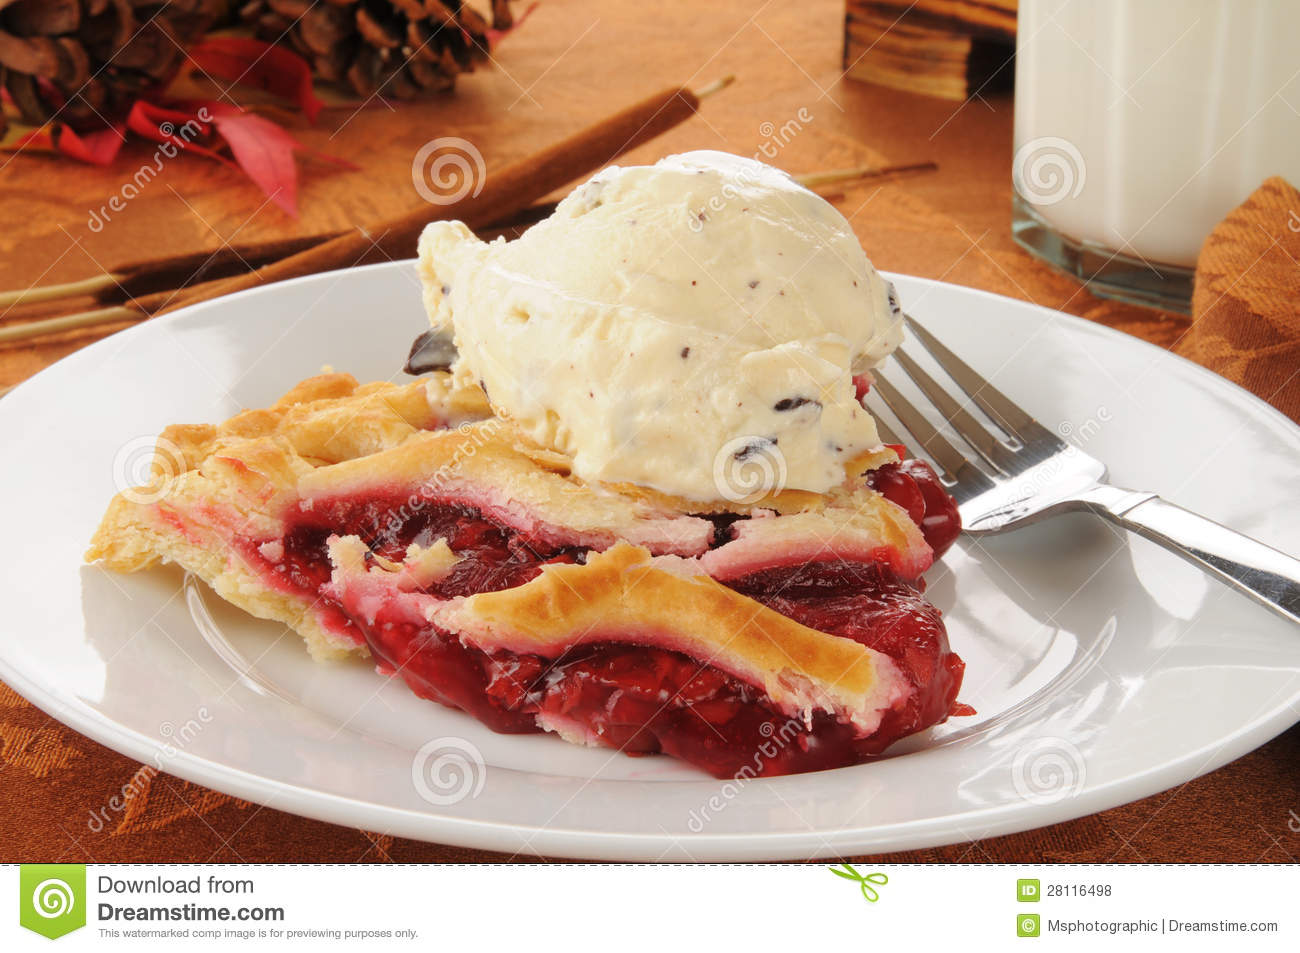 Cherry pie ala mode